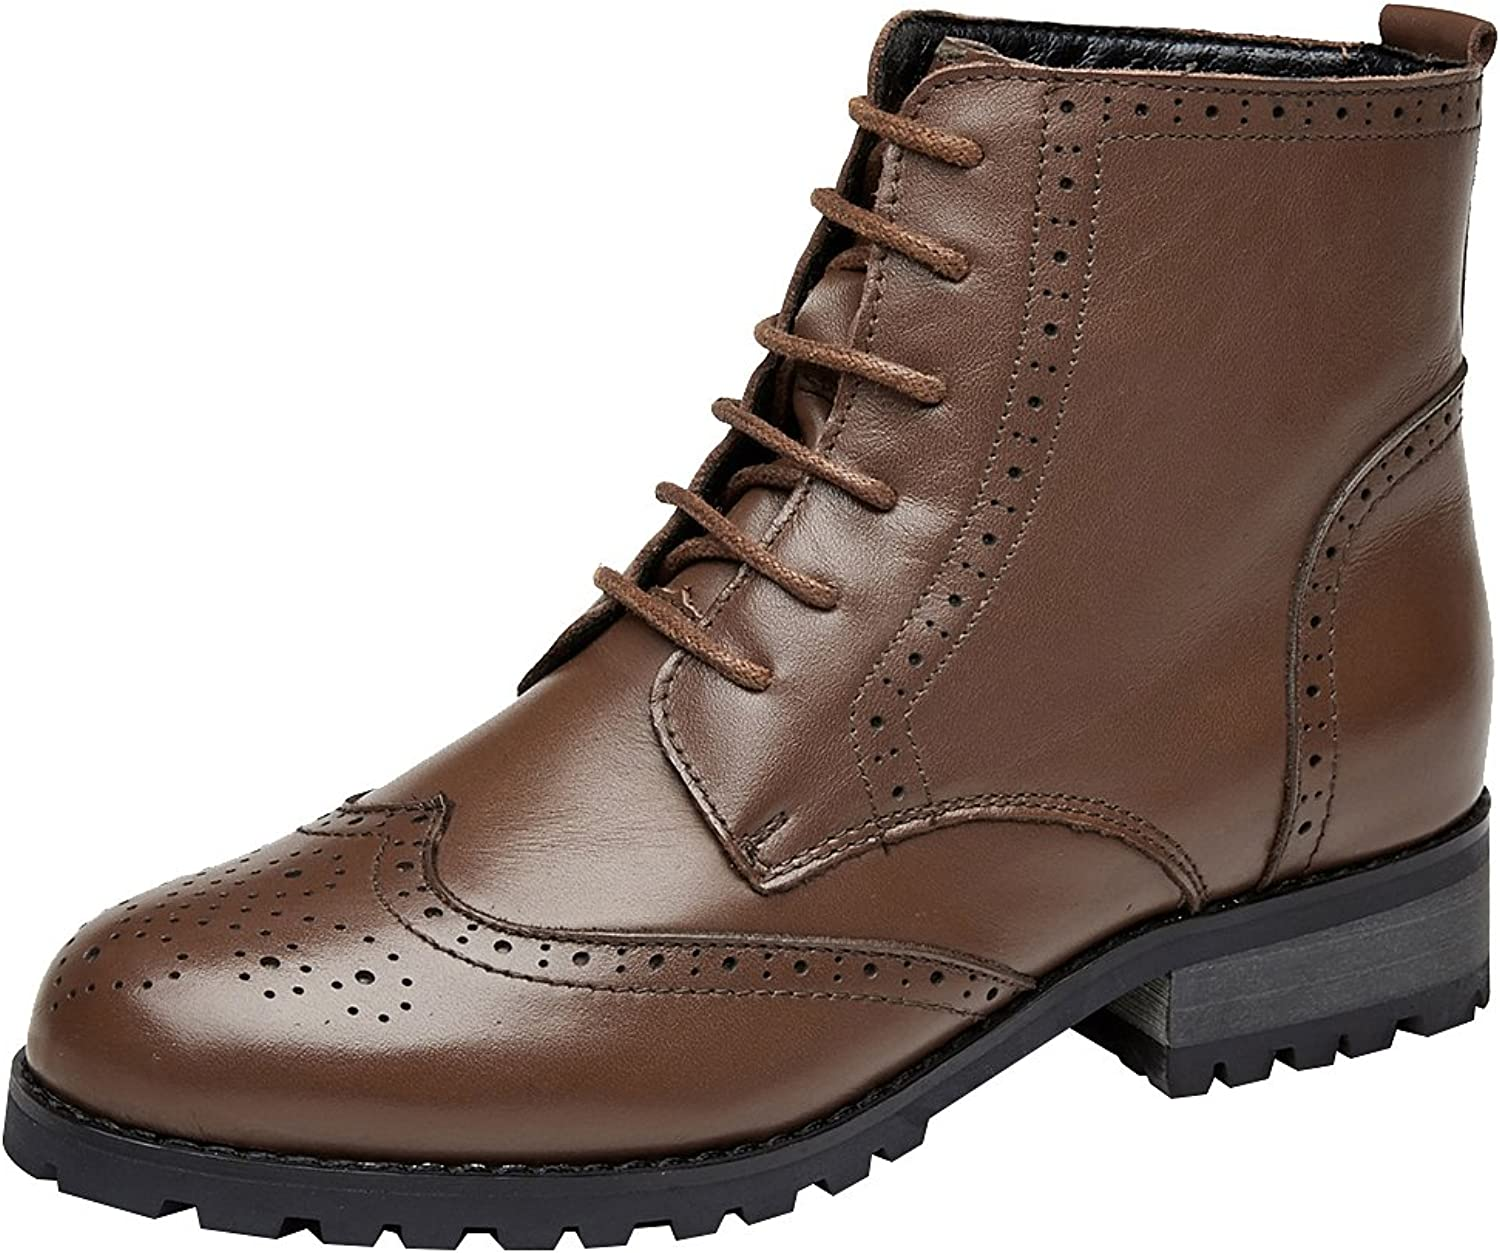 Rismart Women's Brogues Ankle High Stylish Leather Combat Boots